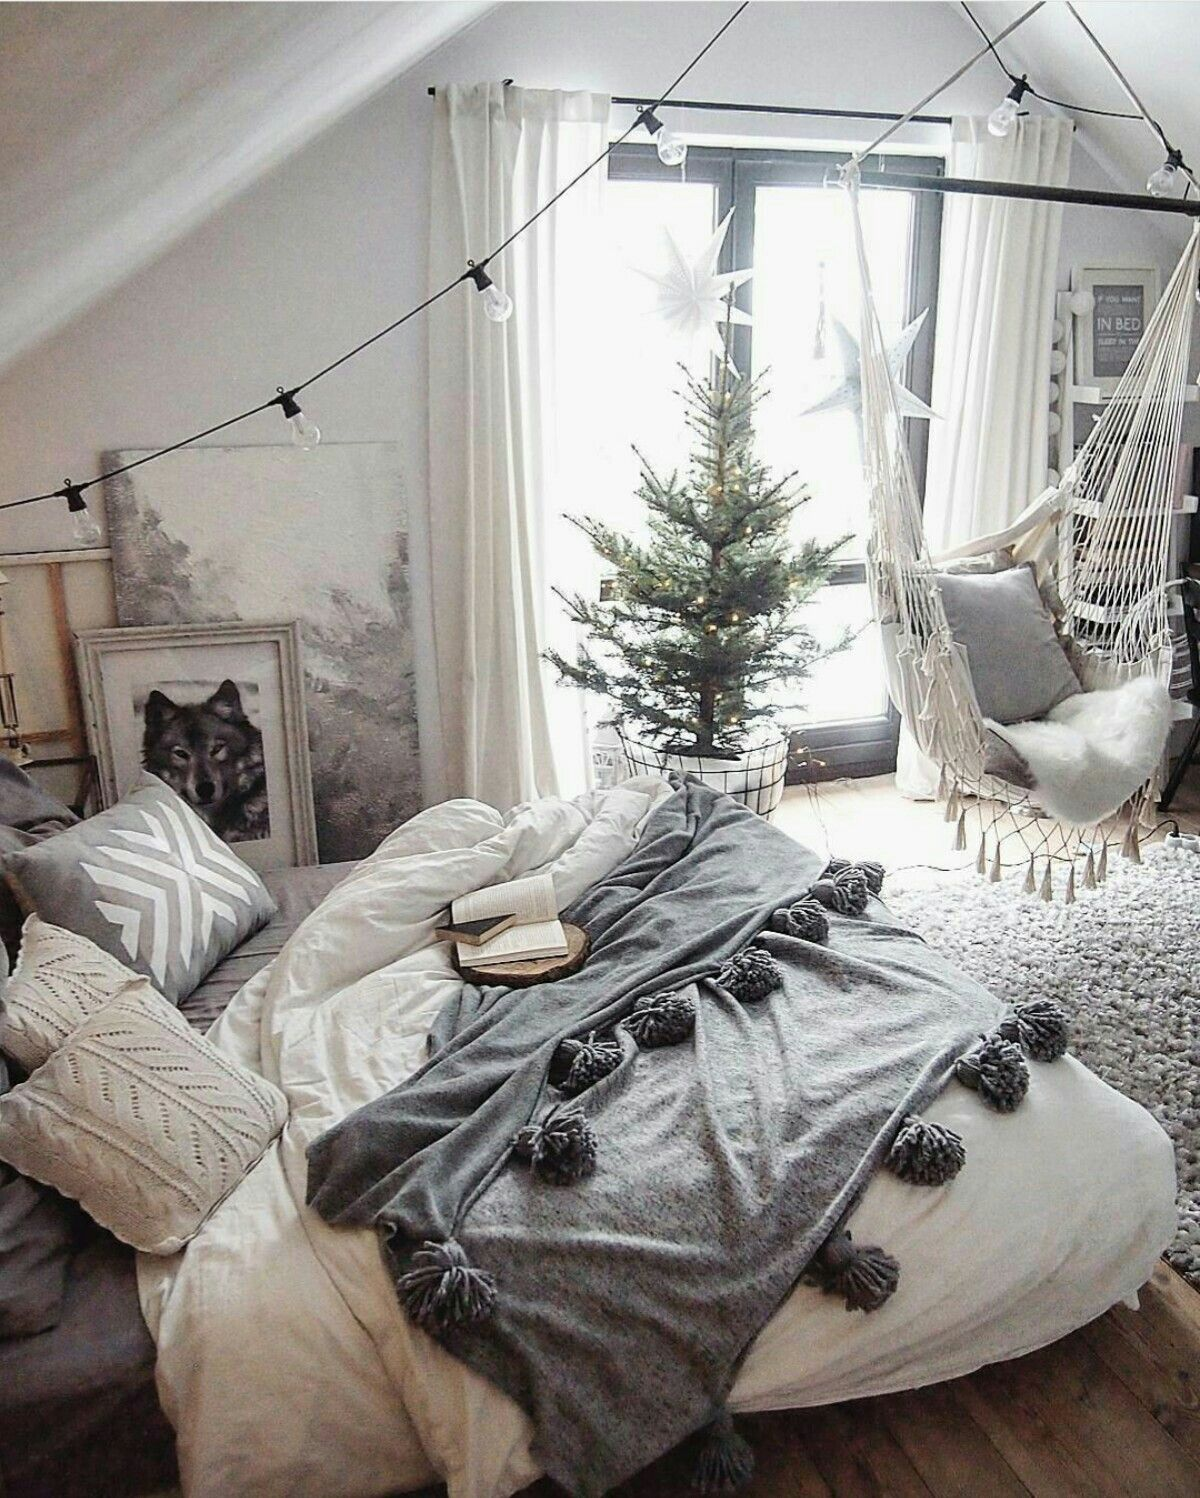 Cozy home decor for dorm rooms small apartments or cozy homes